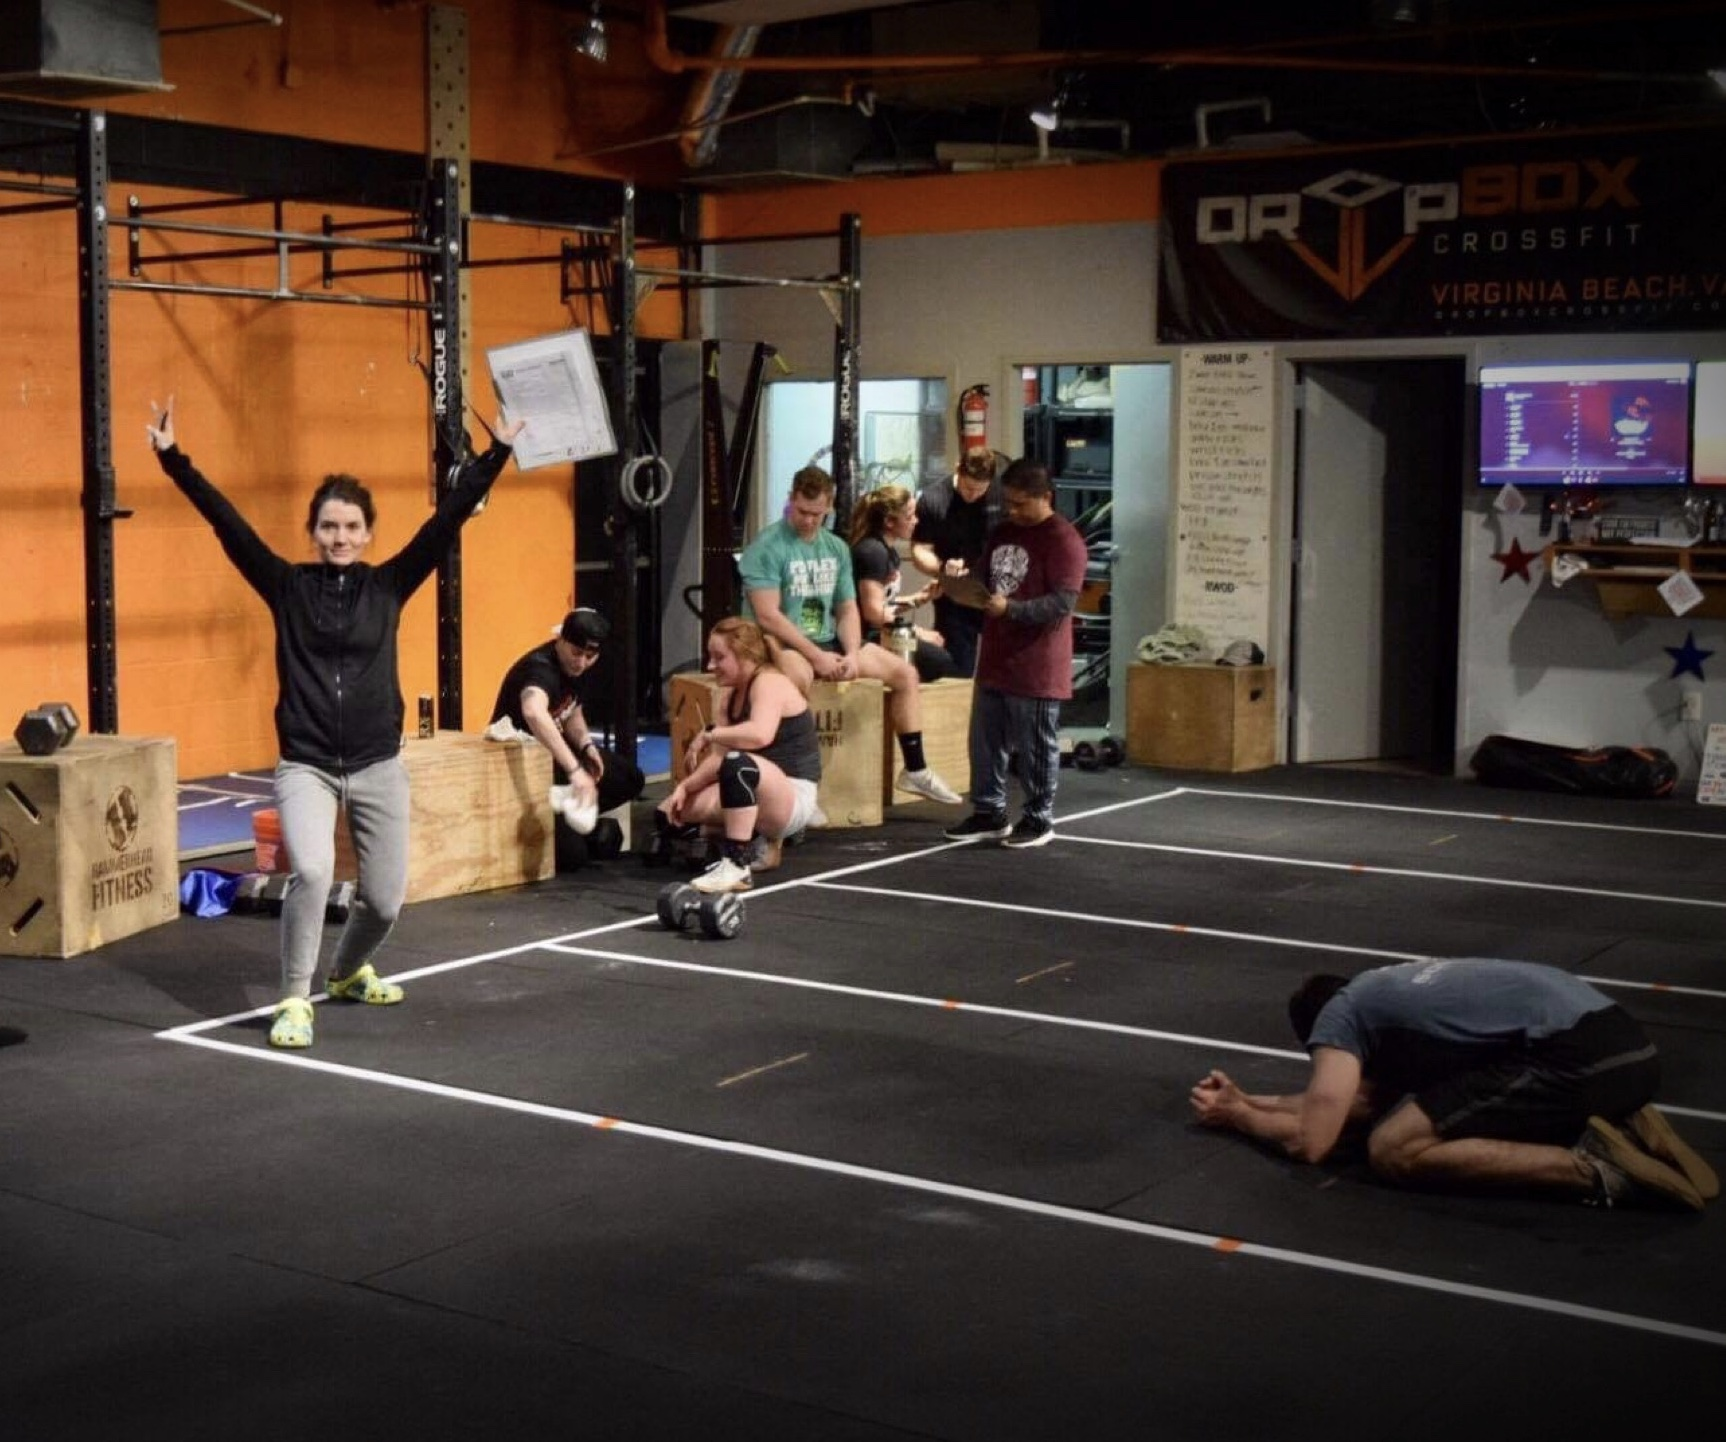 Amber volunteering as a judge for Open Workout 19.3